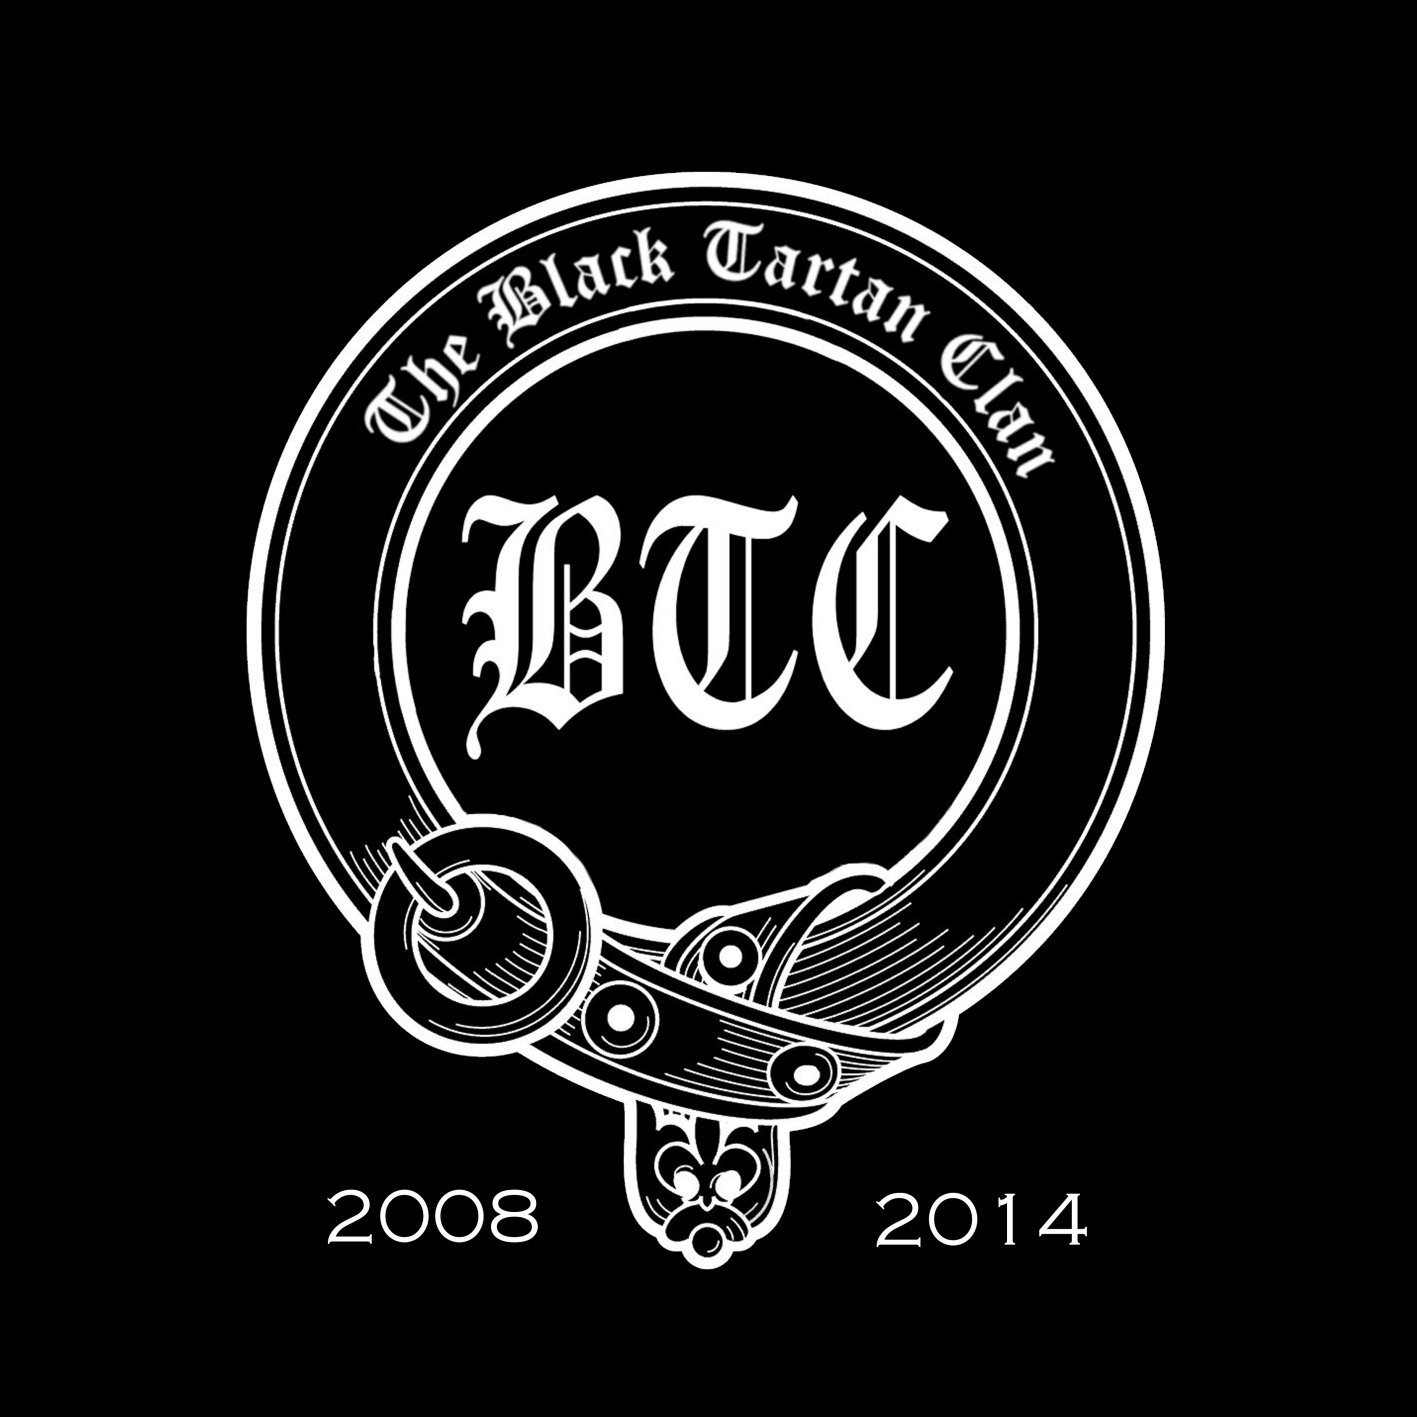 Black Tartan Clan - 2008 - 2014 CD